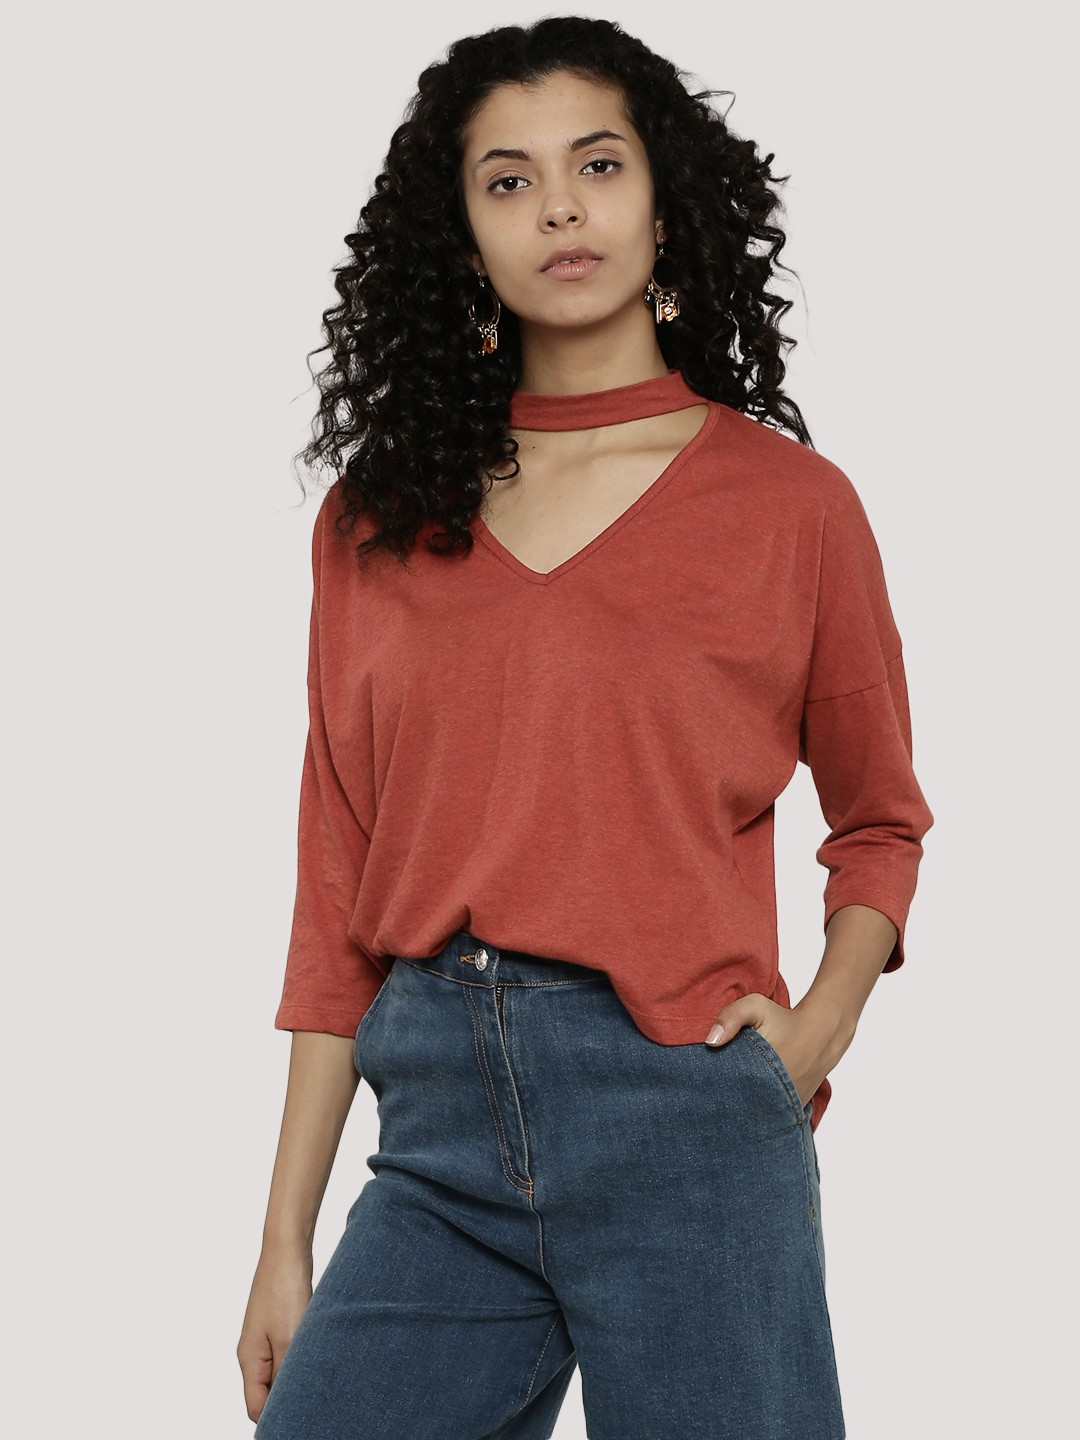 Women Loose Tops - Online shopping for Women Loose Tops in India. Buy Women Loose Tops Free Shipping Cash on Delivery 30 Day Returns.